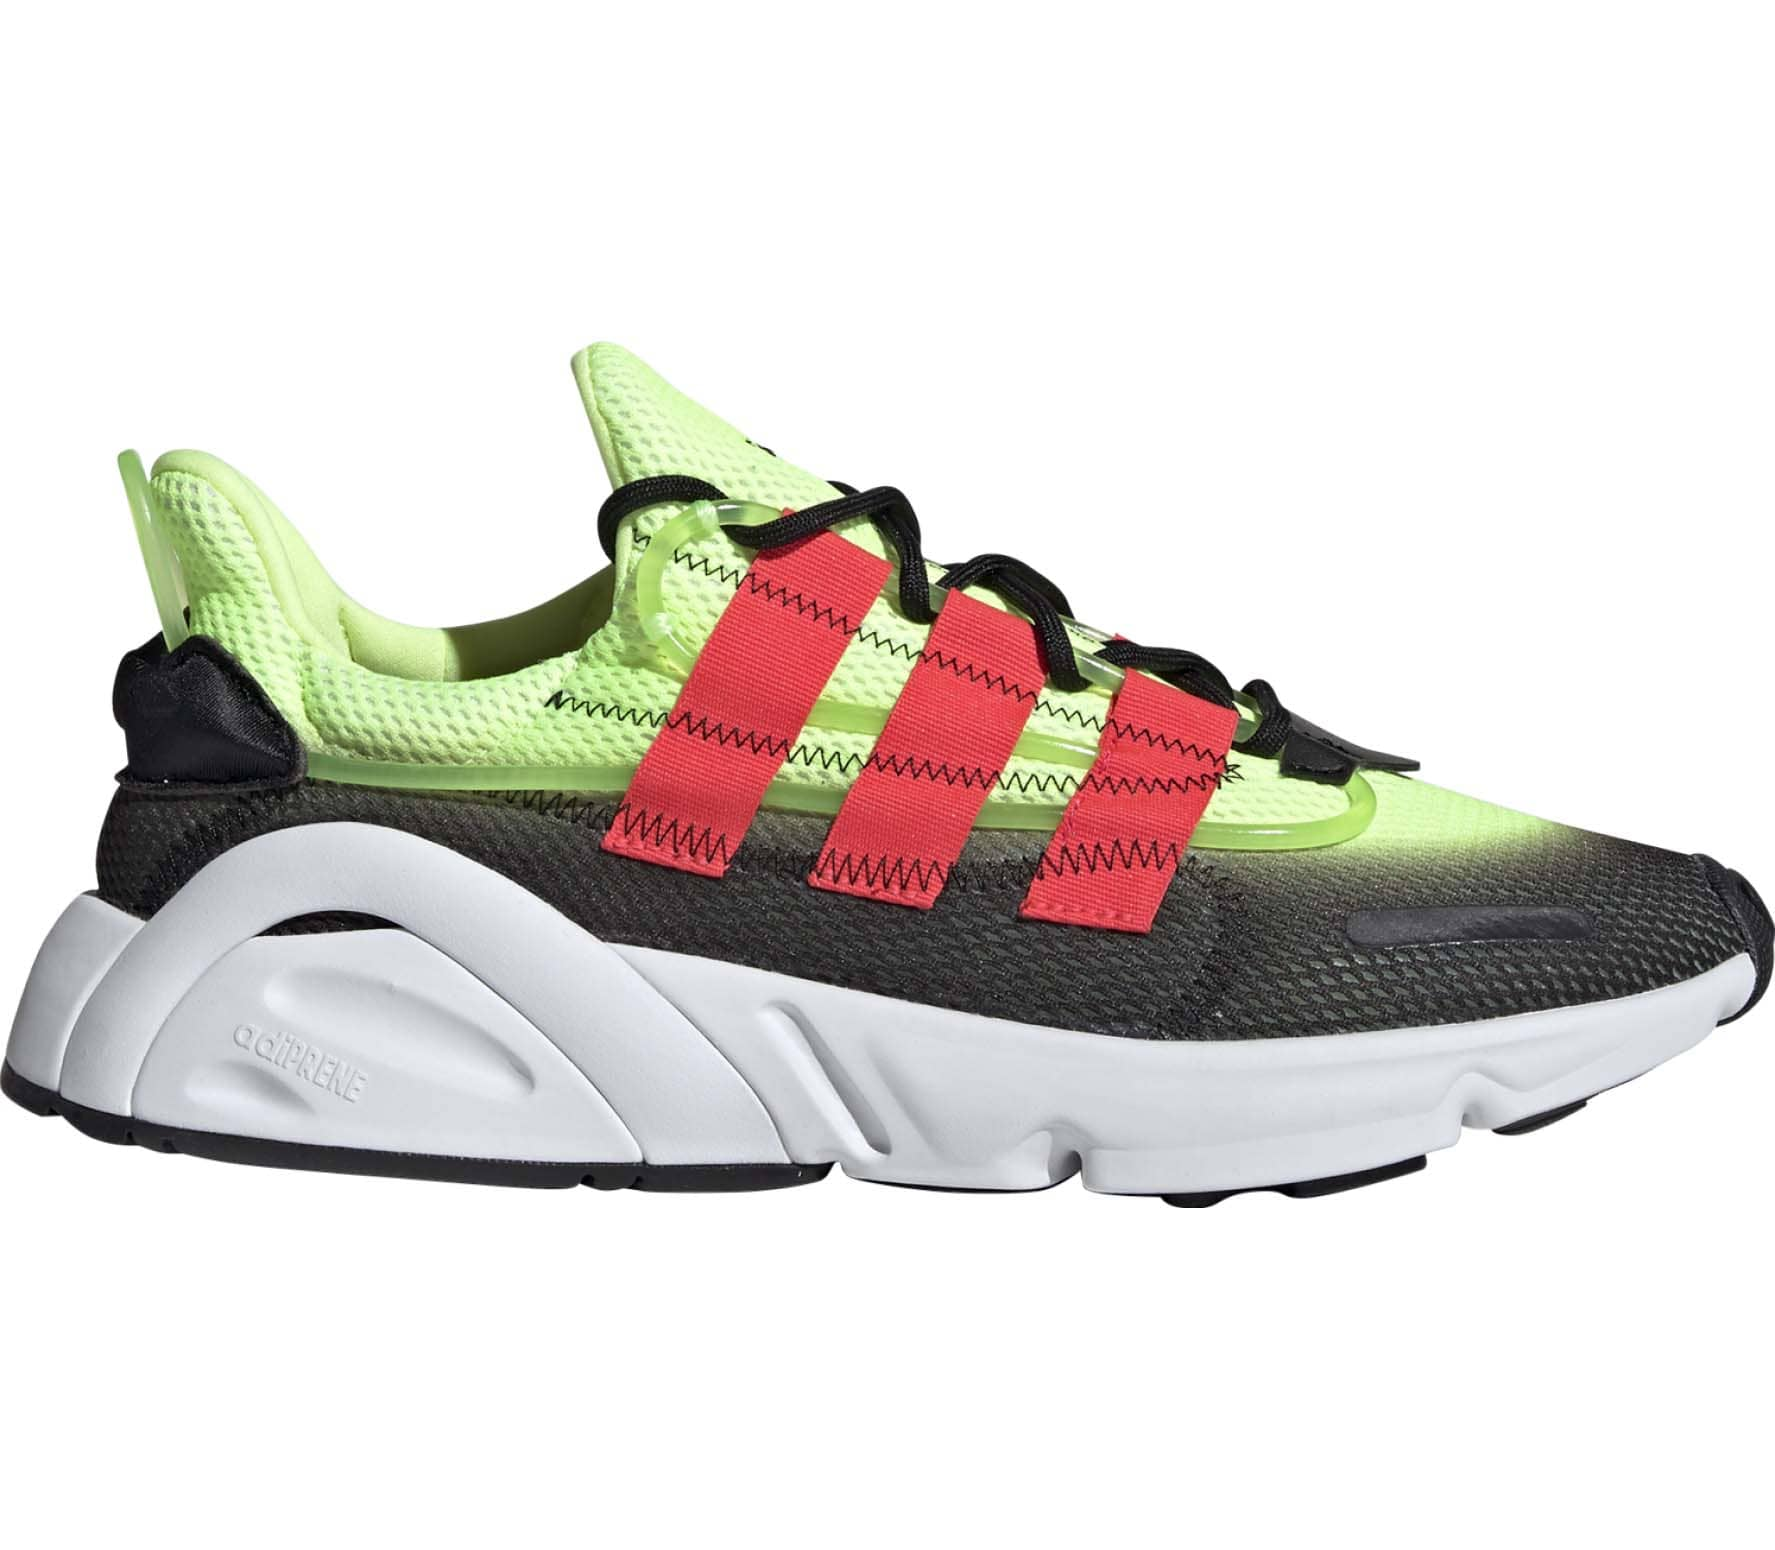 new products 7c3cb 09959 LXCON Unisex Sneakers